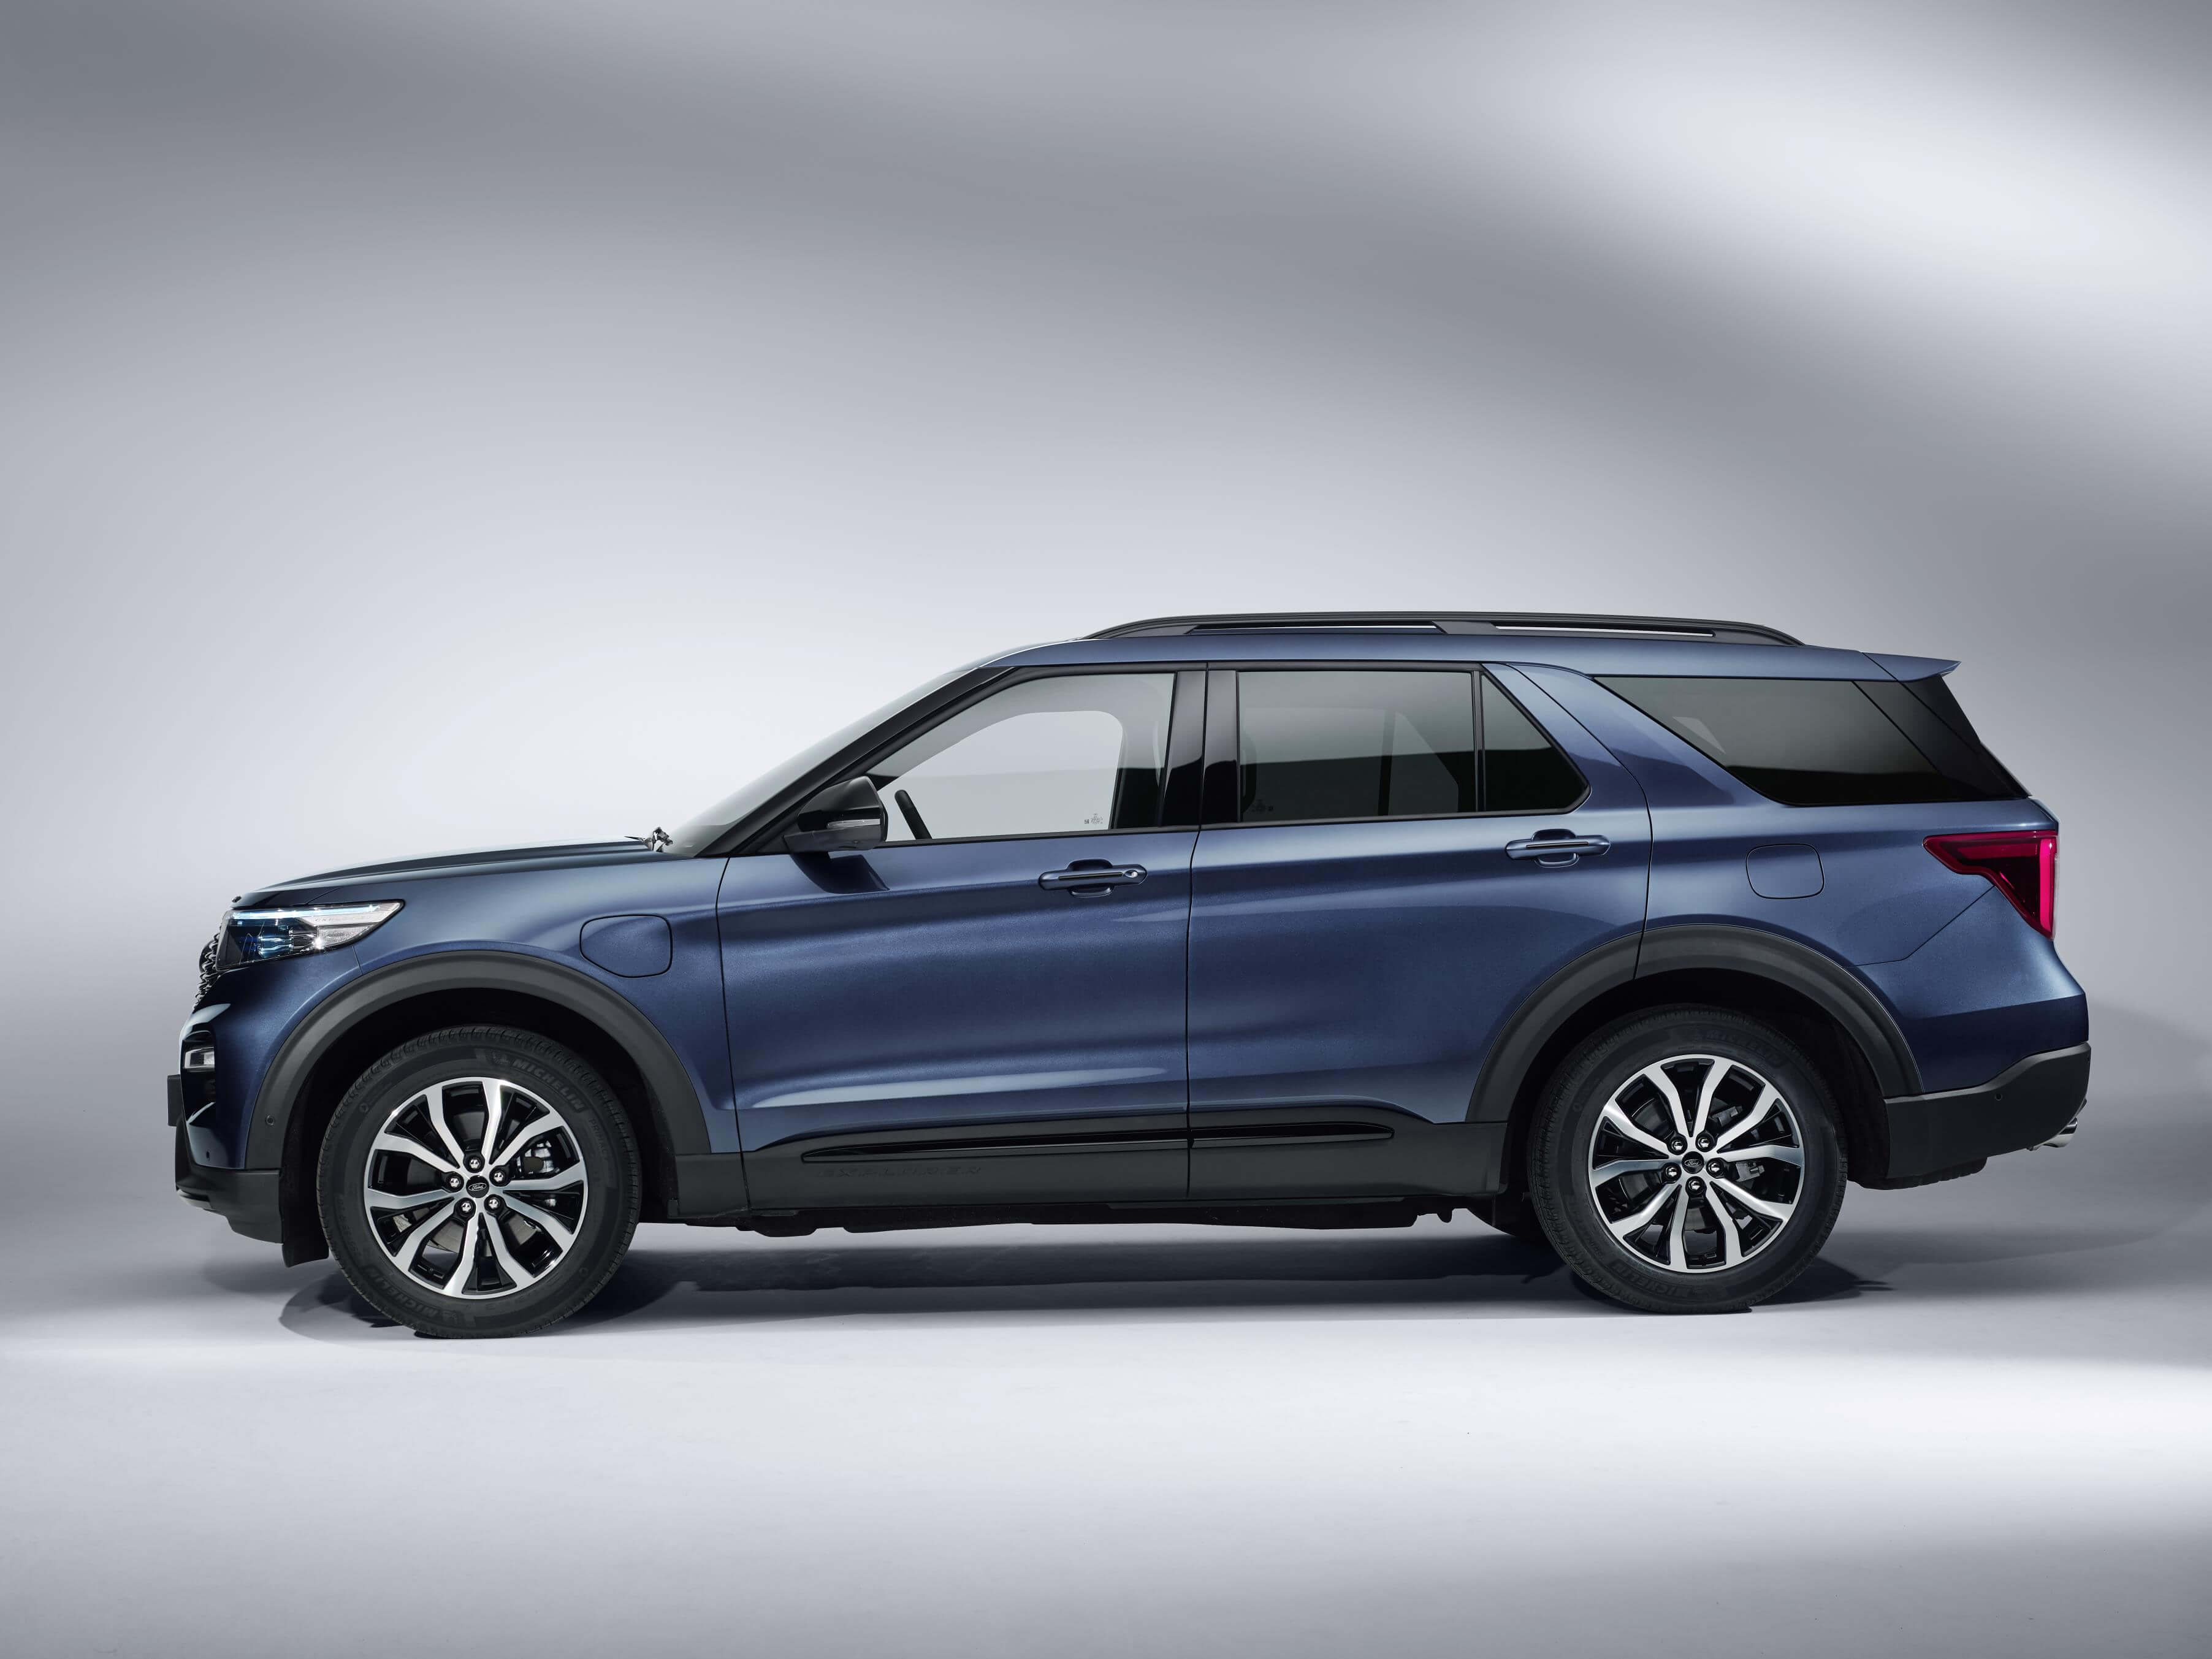 Ford Explorer 2019: lateral